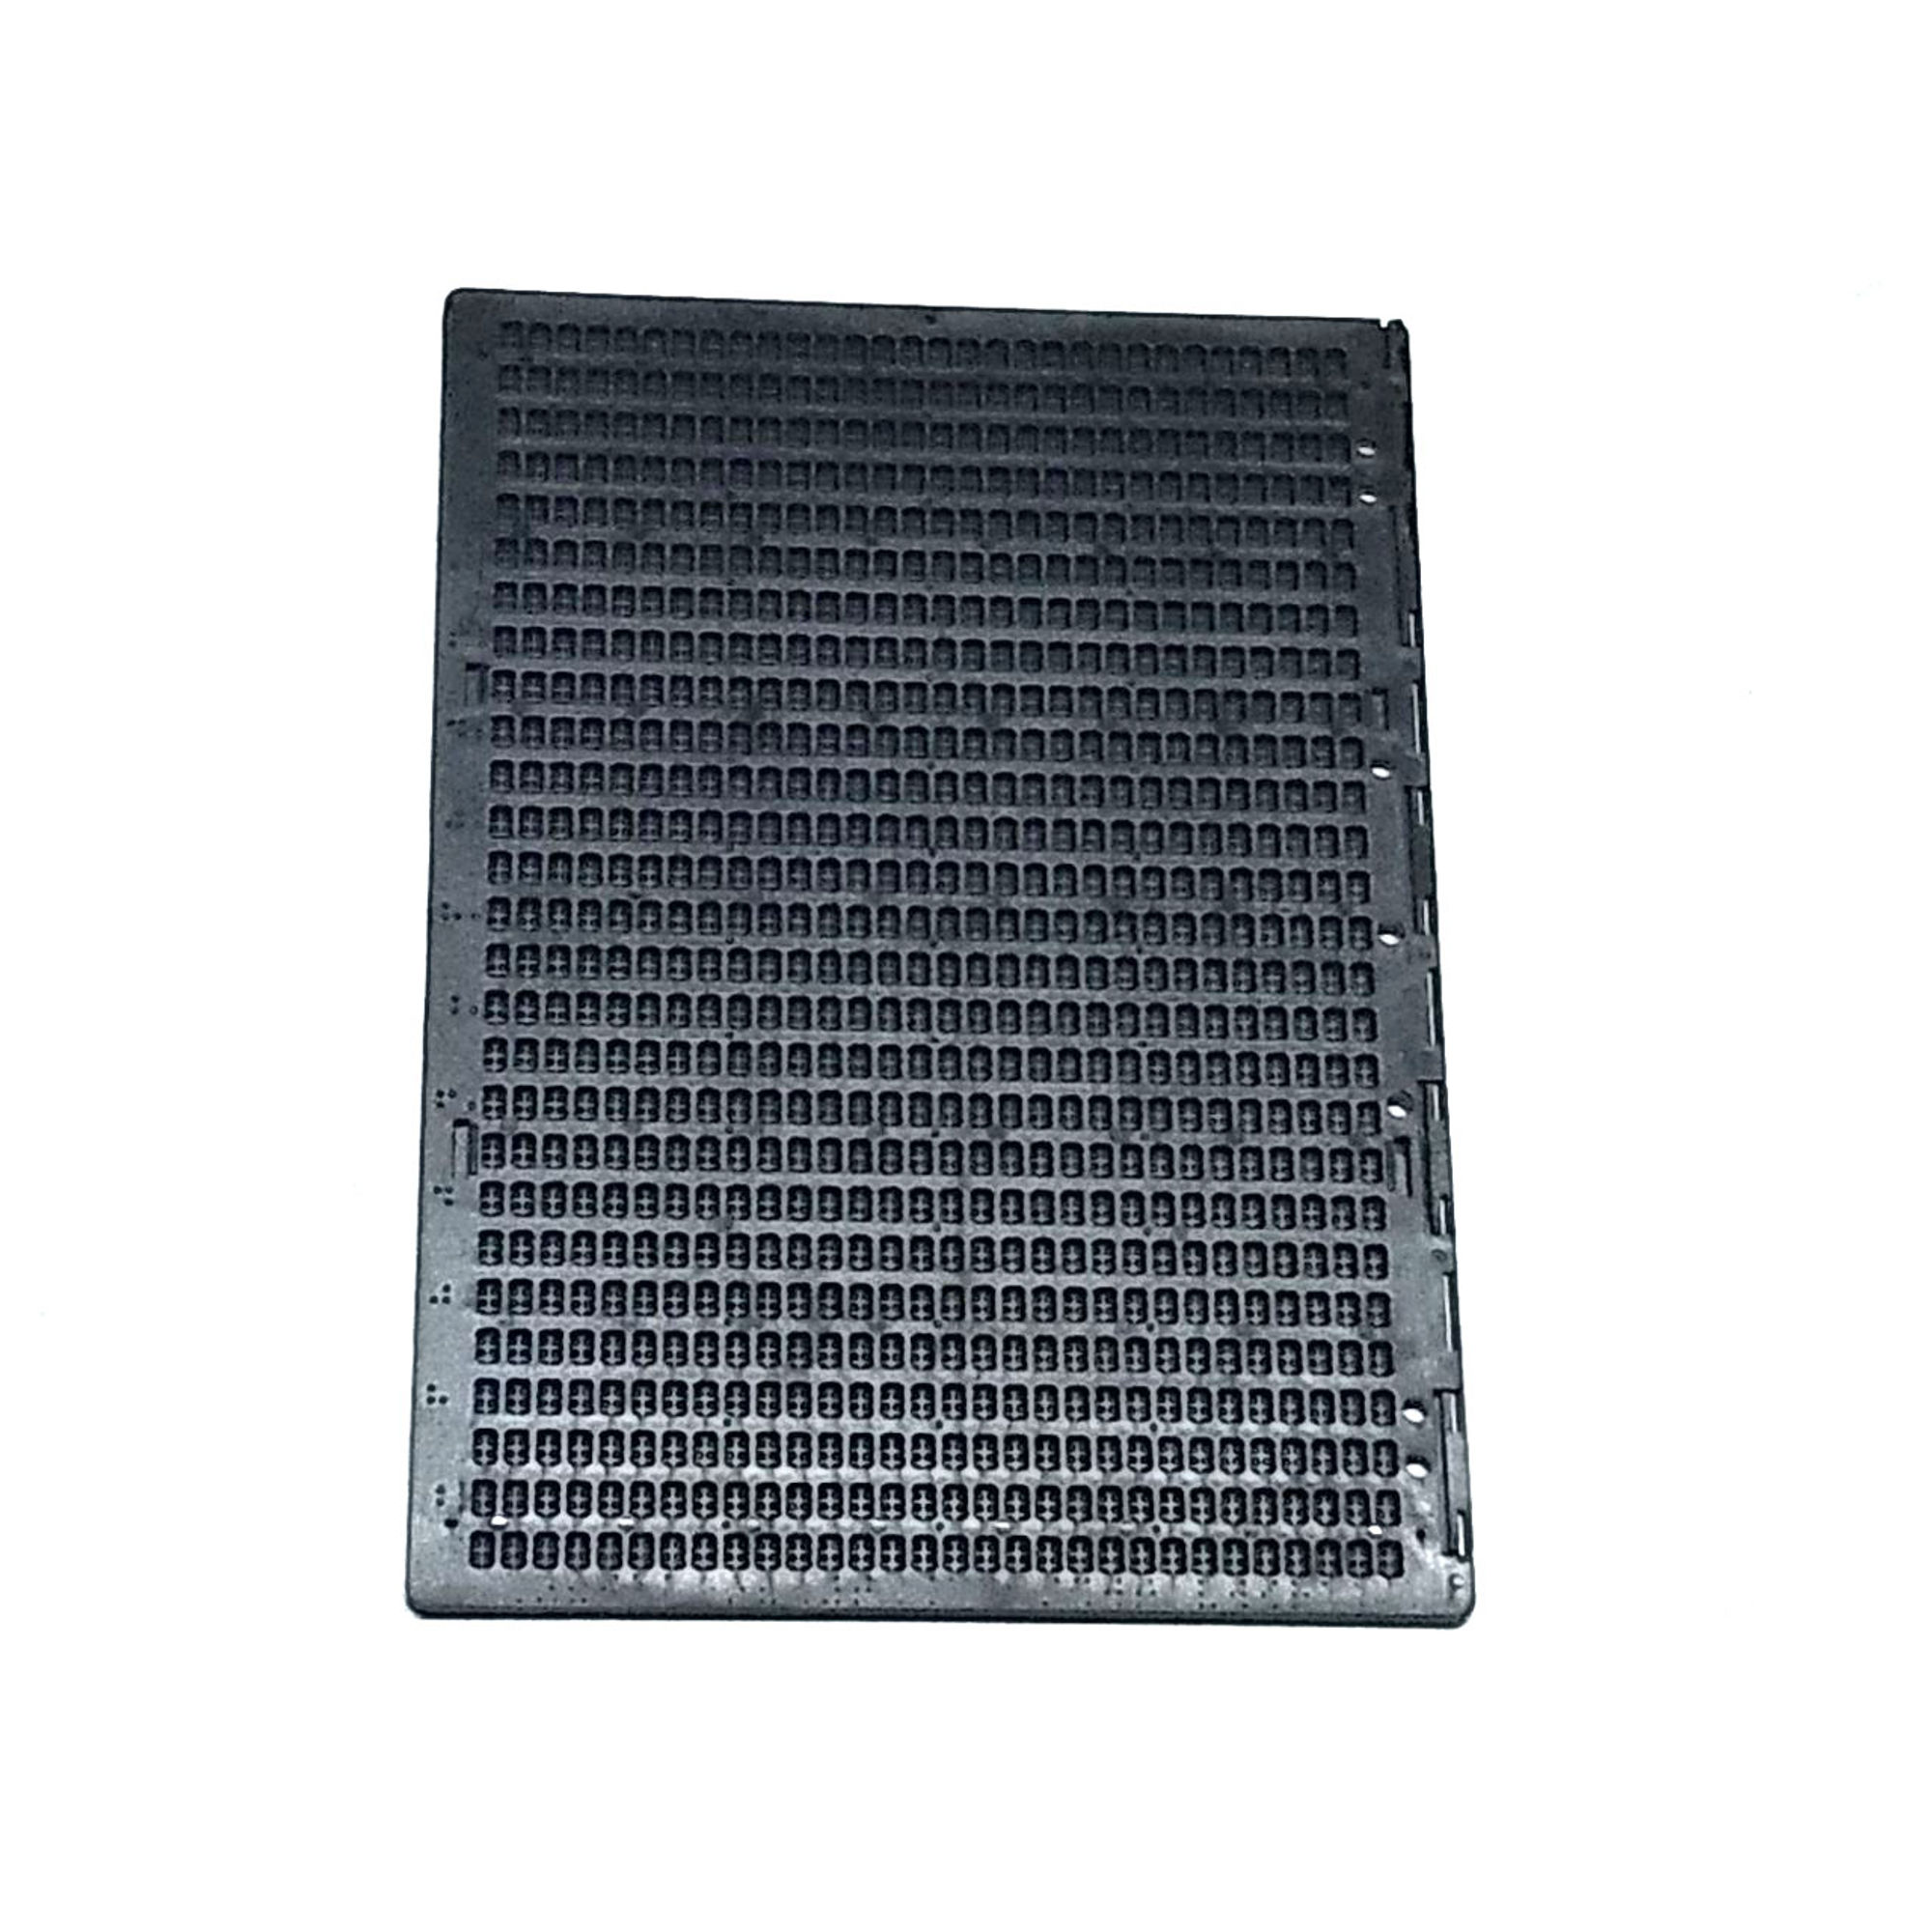 Braille Slate for Visually Impaired A4 Size